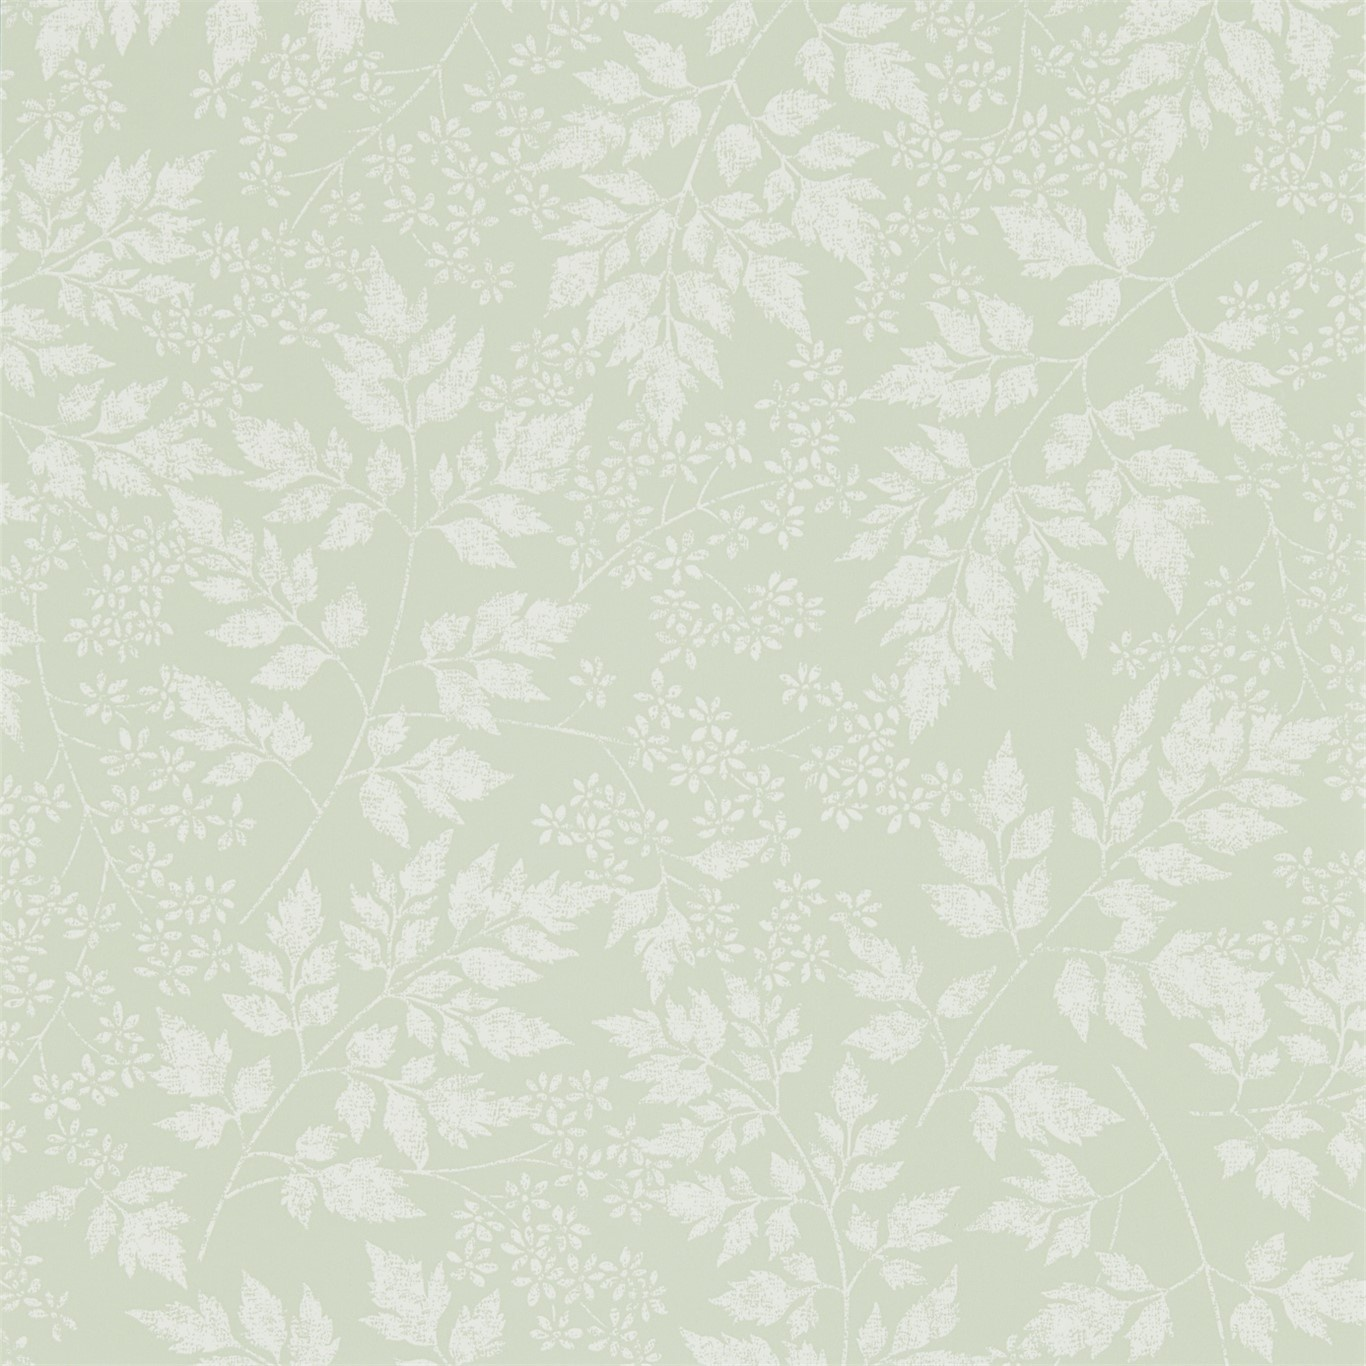 Image of Sanderson Home Spring Leaves Celadon Wallpaper 216372